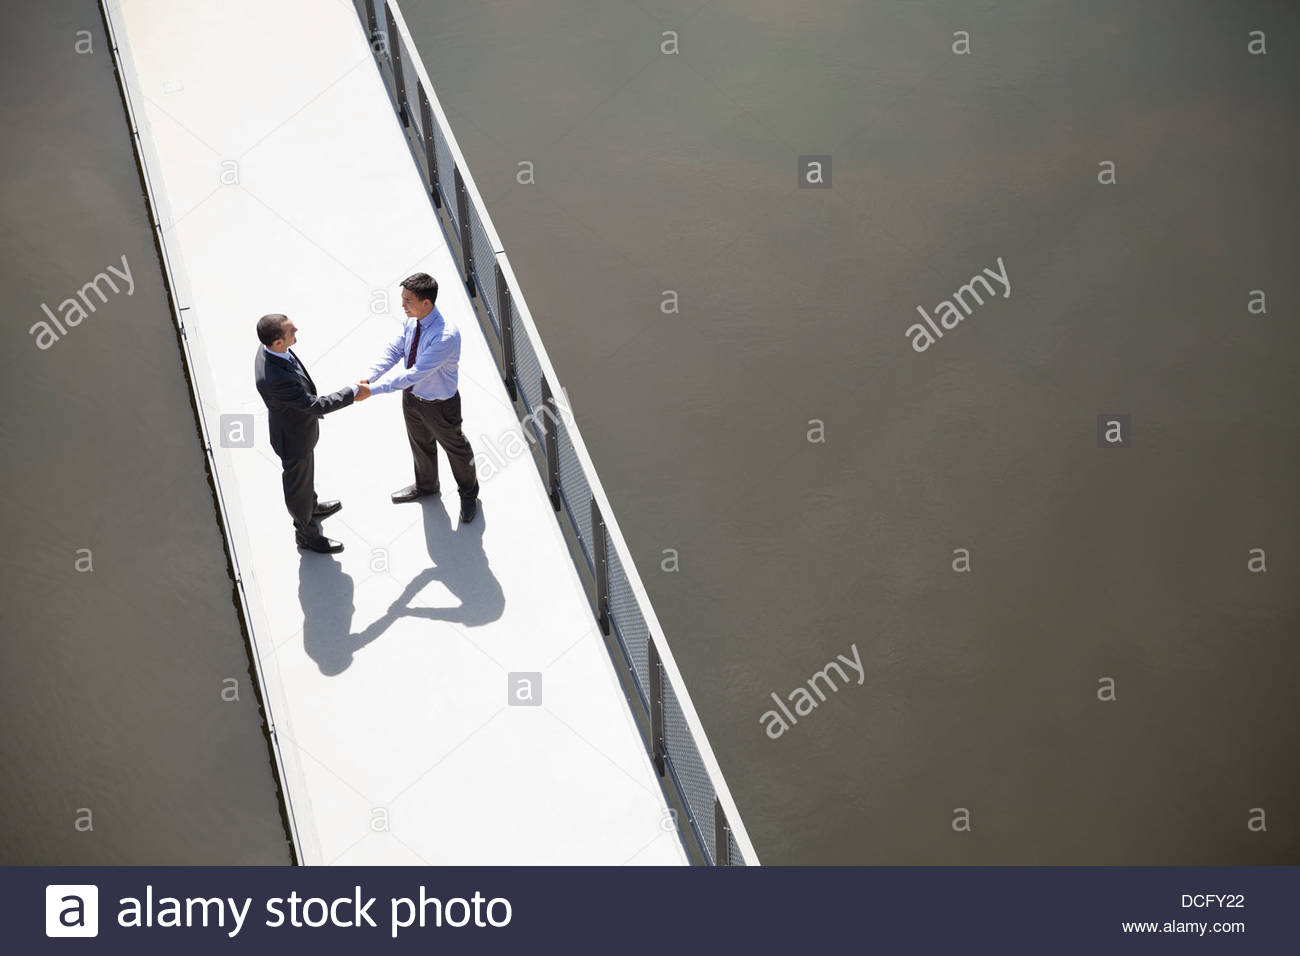 High angle view of businessmen shaking hands on bridge - Stock Image